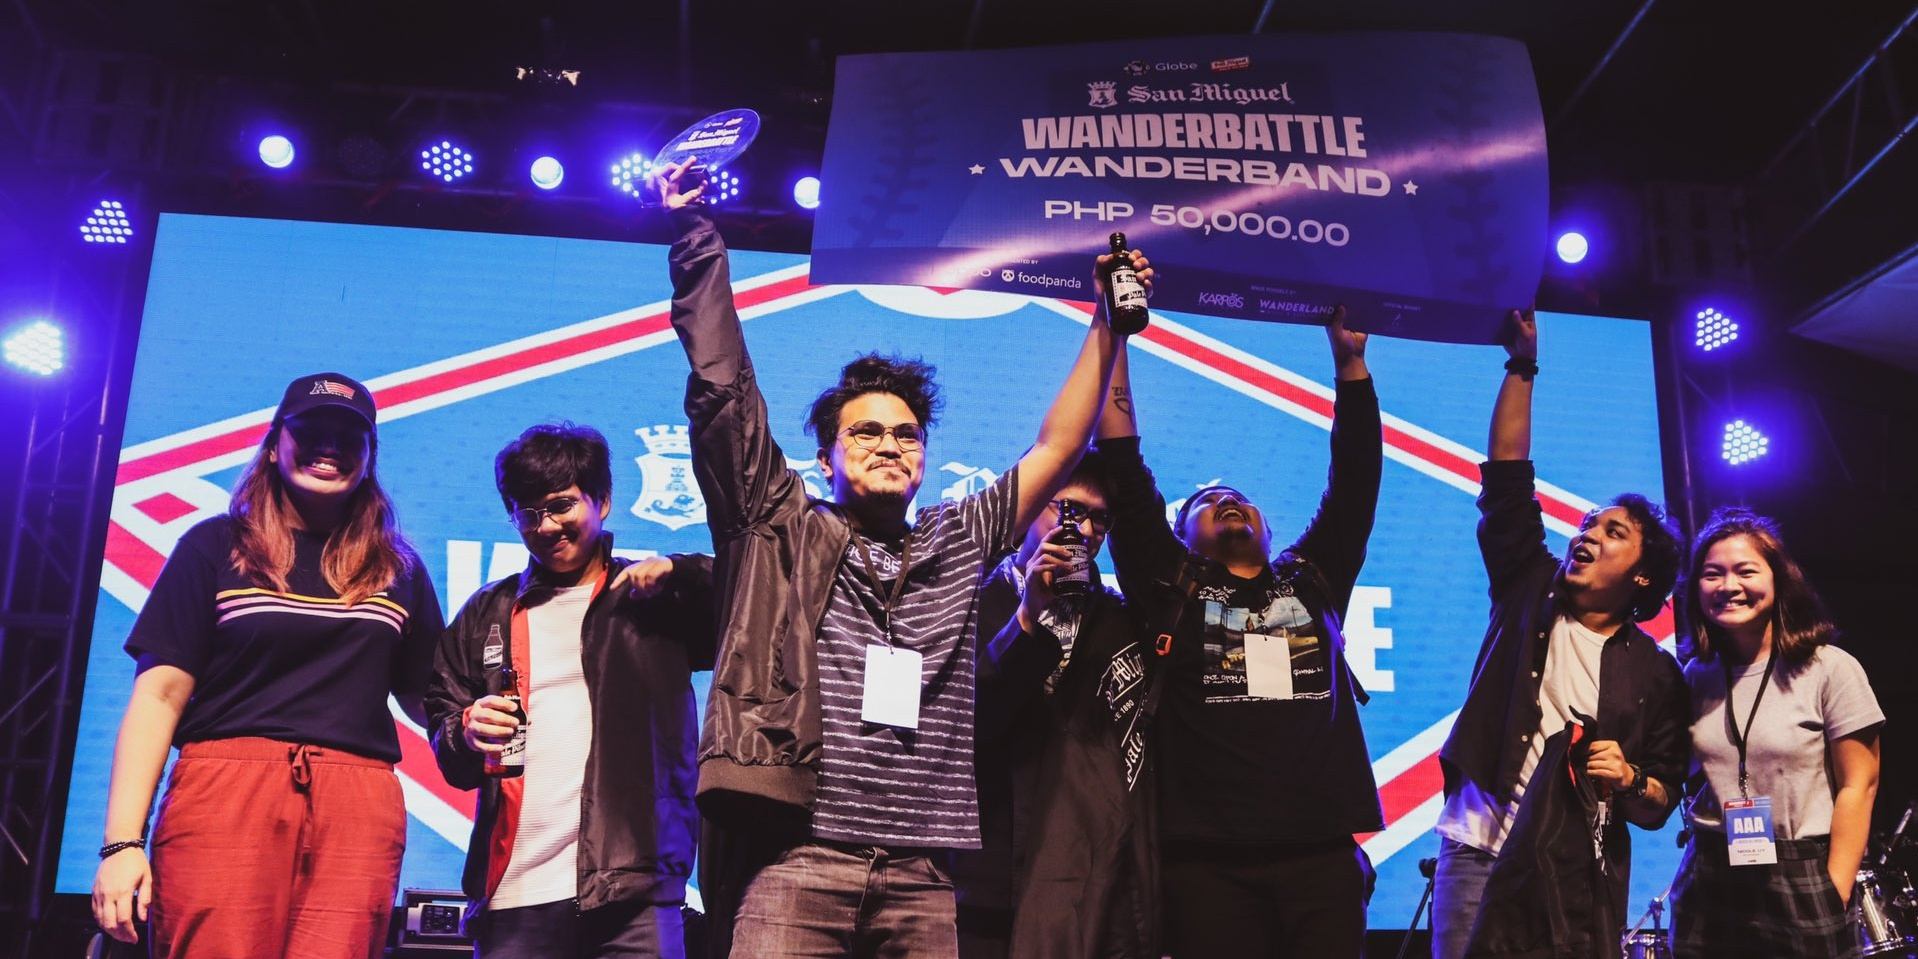 Wanderband champs The Sundown and runners-up Morobe are playing the Wanderland 2020 stage